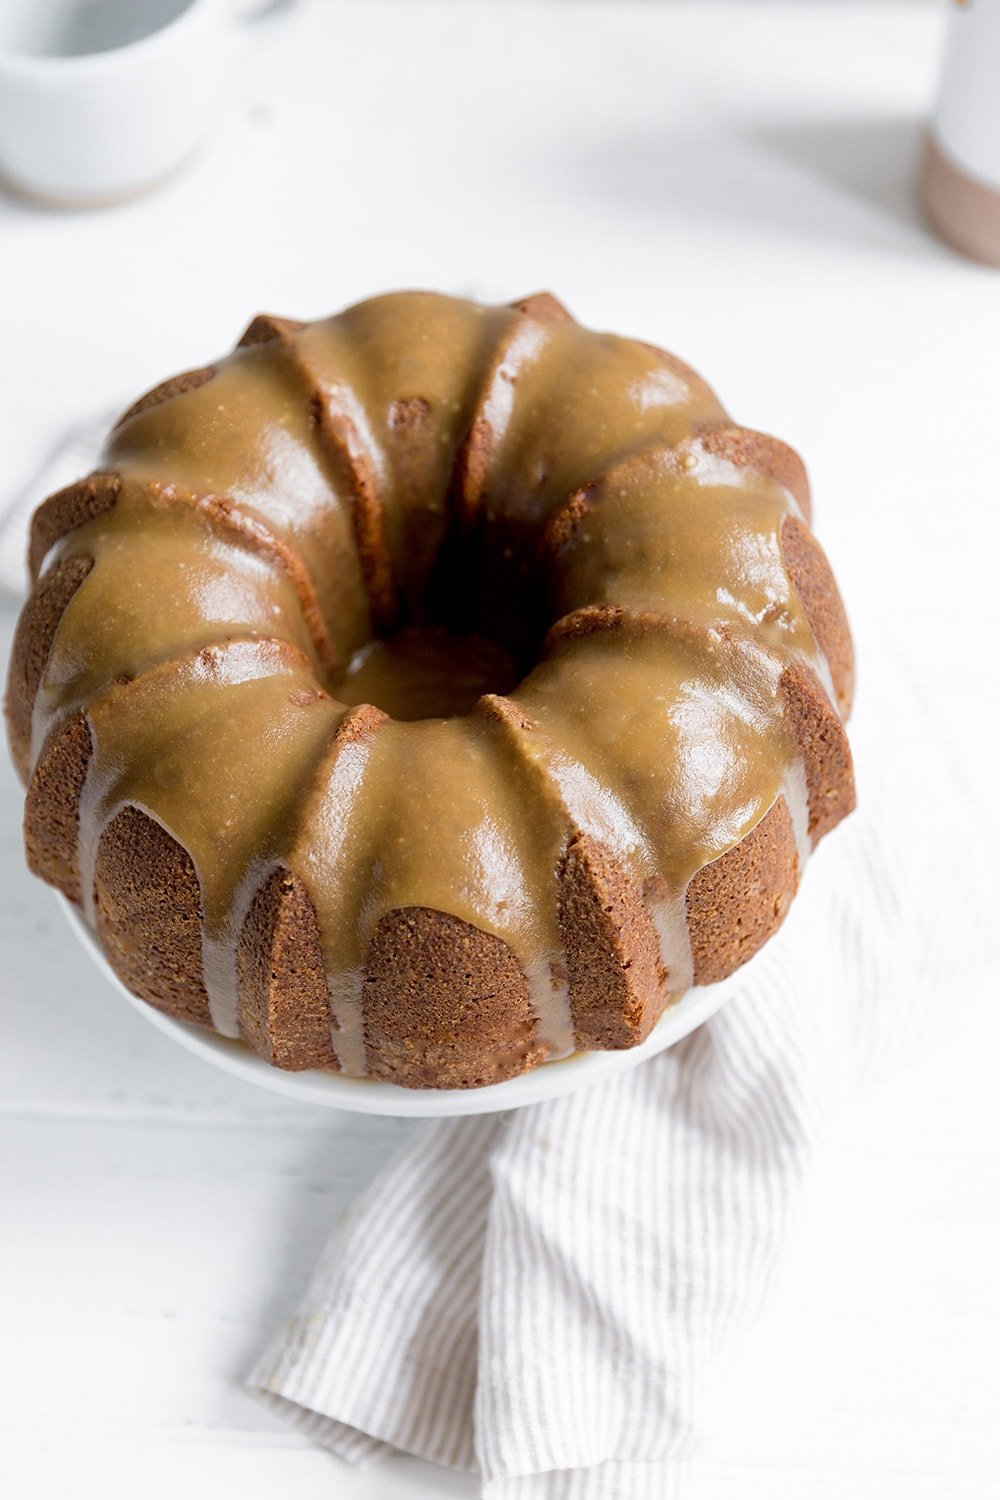 Butterscotch Bundt Cake features a brown sugar sour cream cake drizzled with a thick butterscotch icing for a simple and beautiful fall dessert.